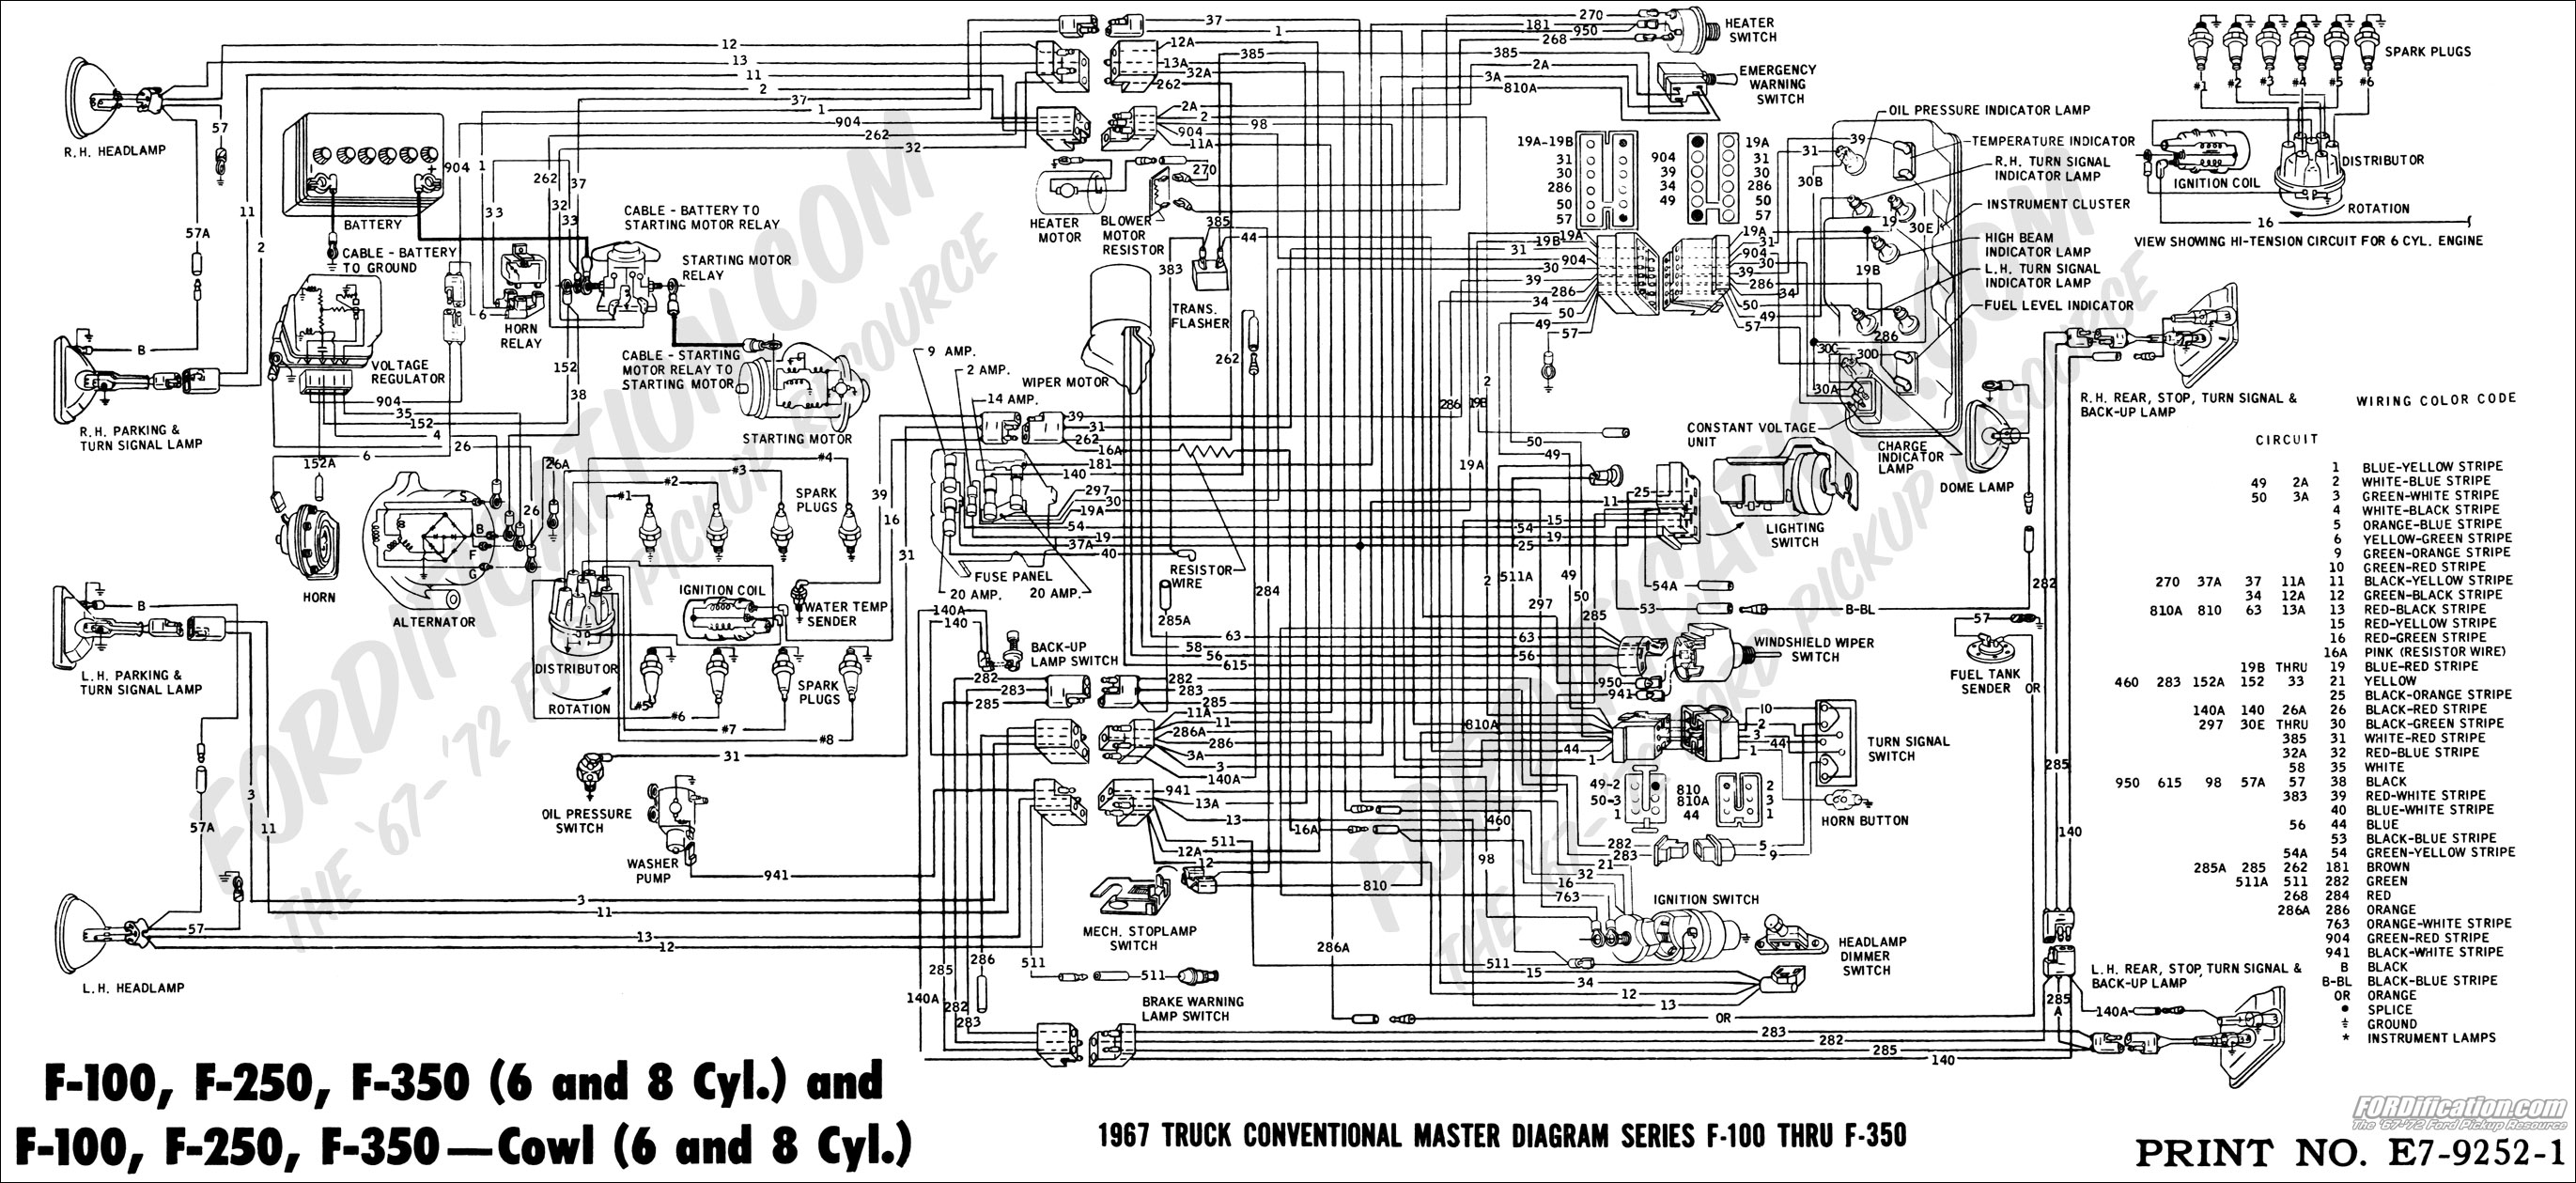 67masterdiagram ford truck technical drawings and schematics section h wiring ford wiring schematics at fashall.co